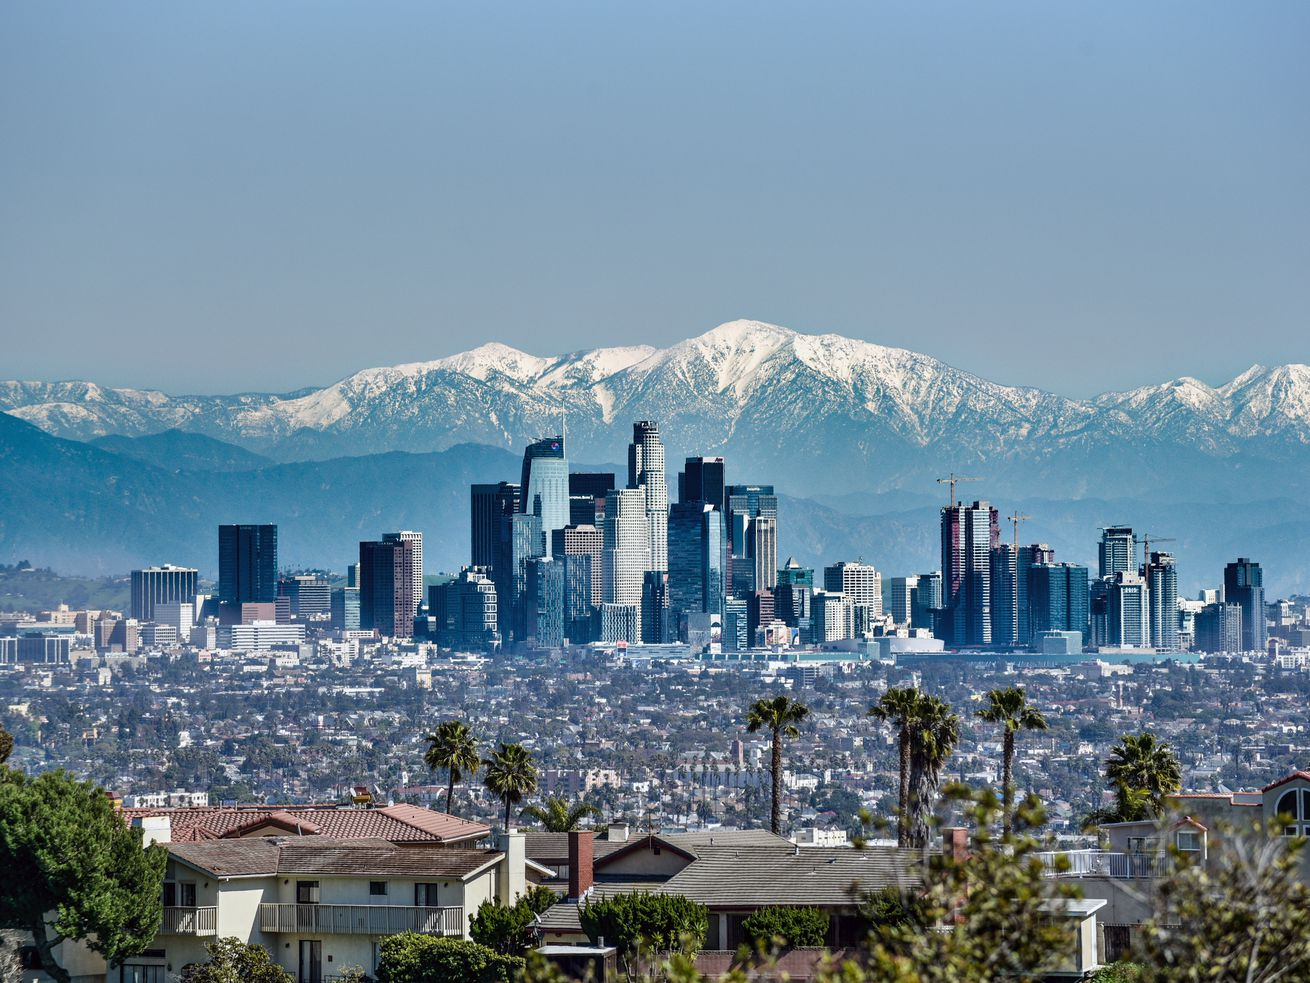 One of the coldest months in decades, February brought snow and other unusual weather to many LA communities.